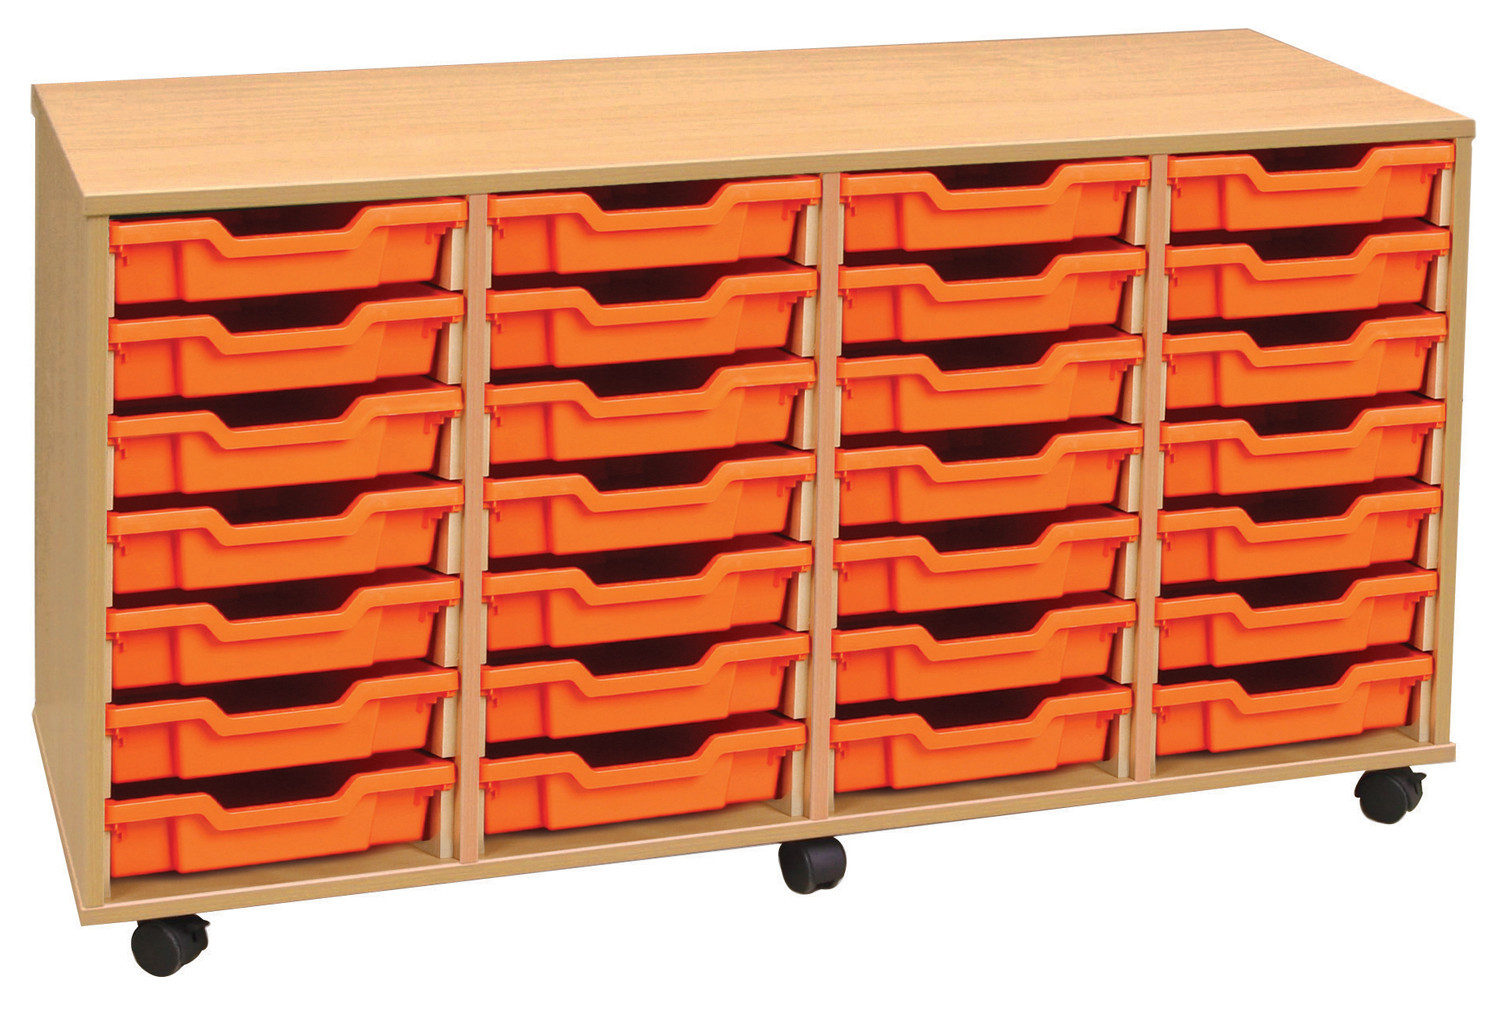 4 bay shallow tray storage with 28 trays